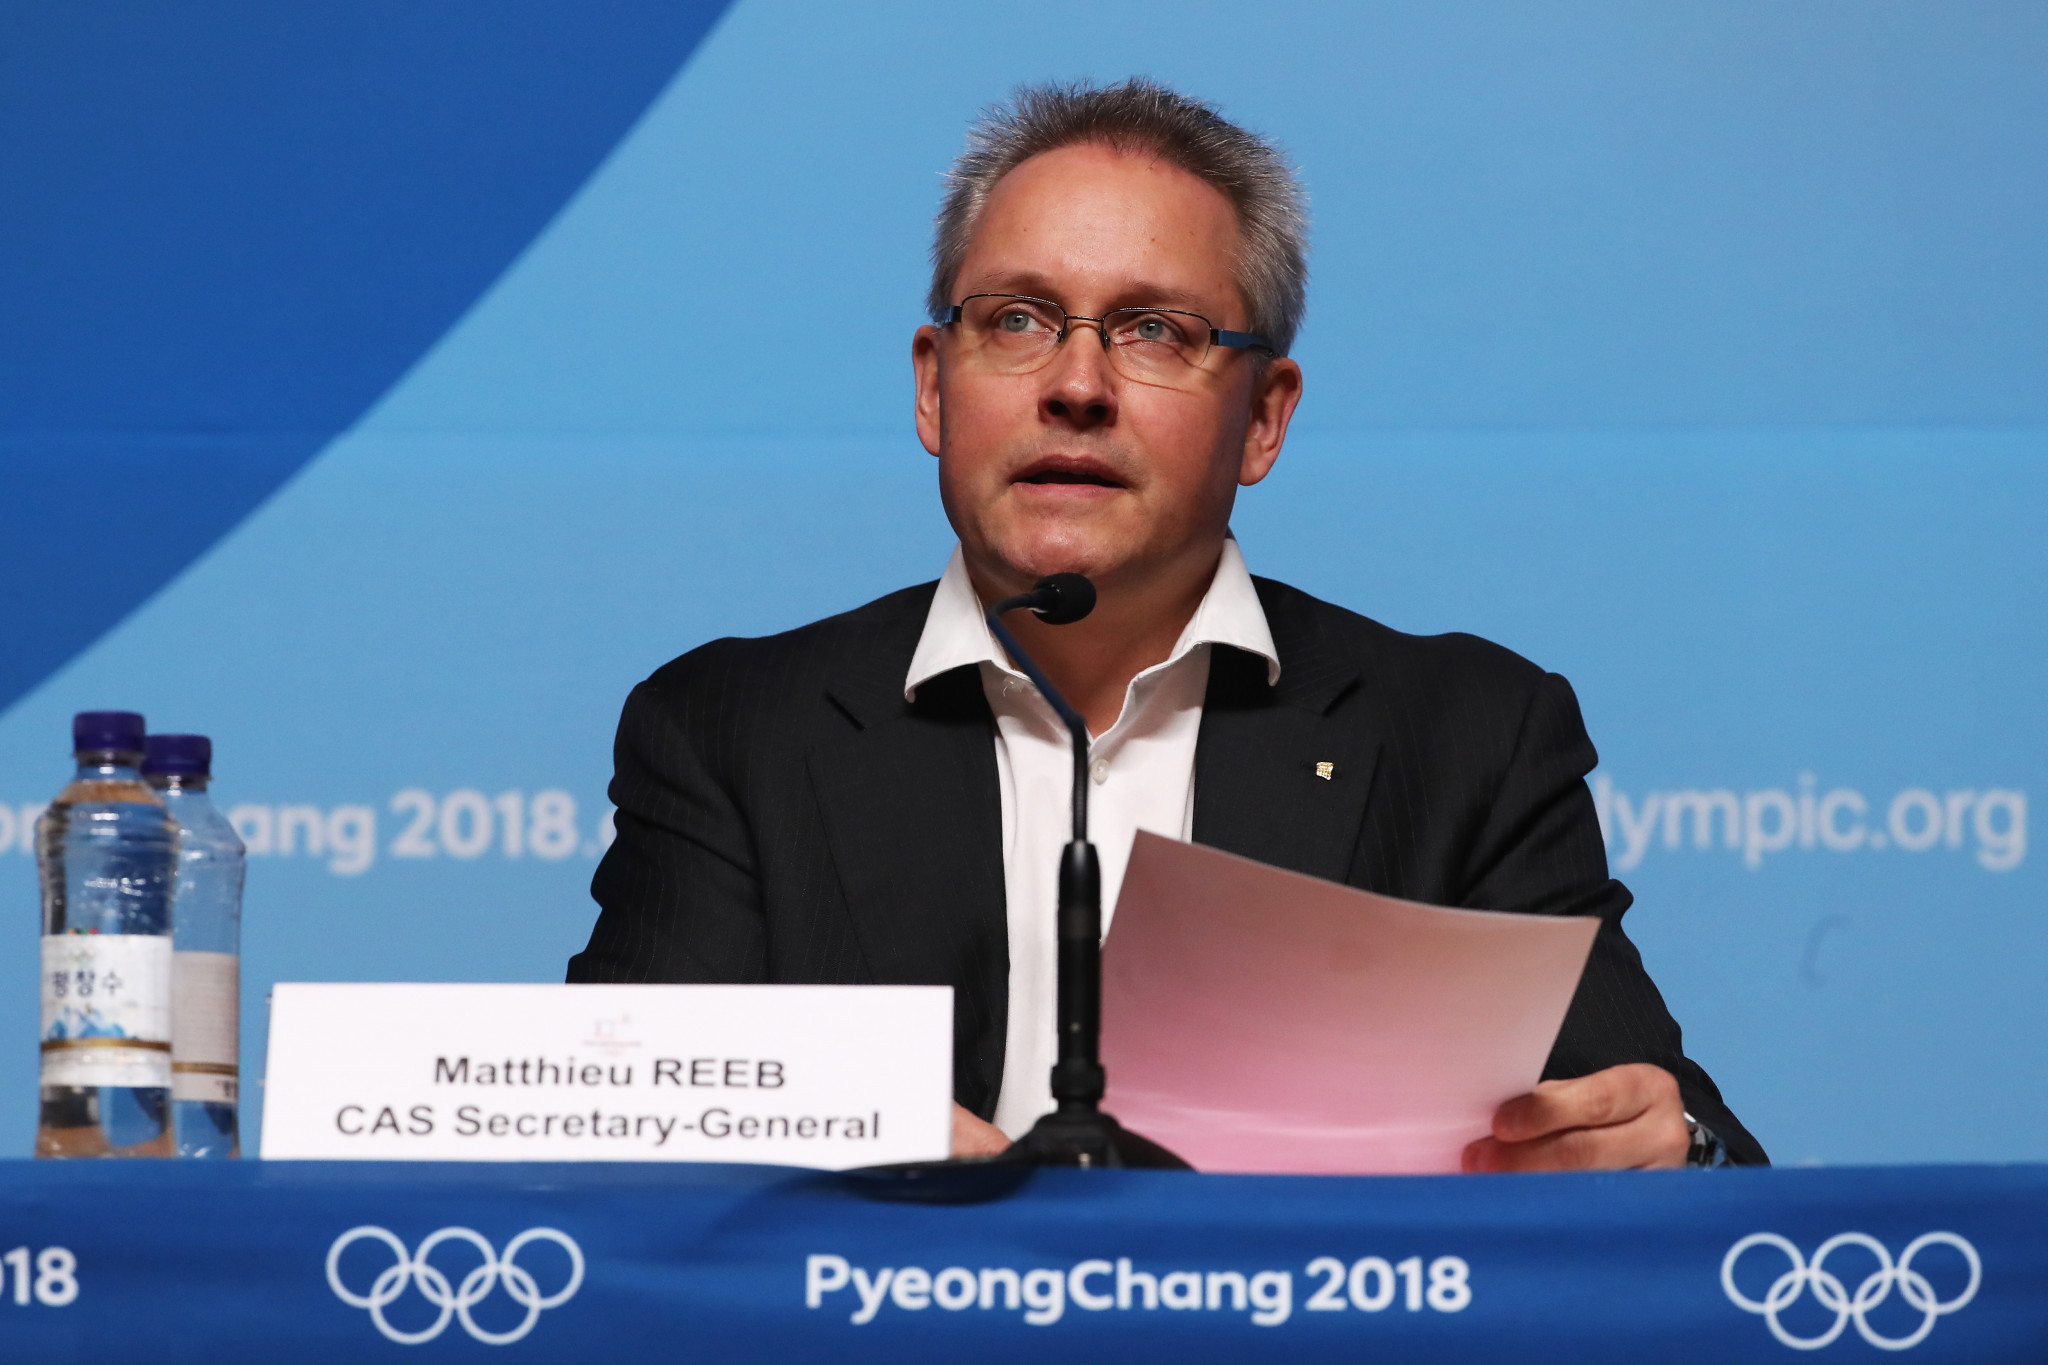 The Court of Arbitration for Sport, whose secretary general Matthieu Reeb is pictured, yesterday dismissed the appeals of all 45 Russian athletes hoping to be cleared to compete at Pyeongchang 2018 ©Getty Images